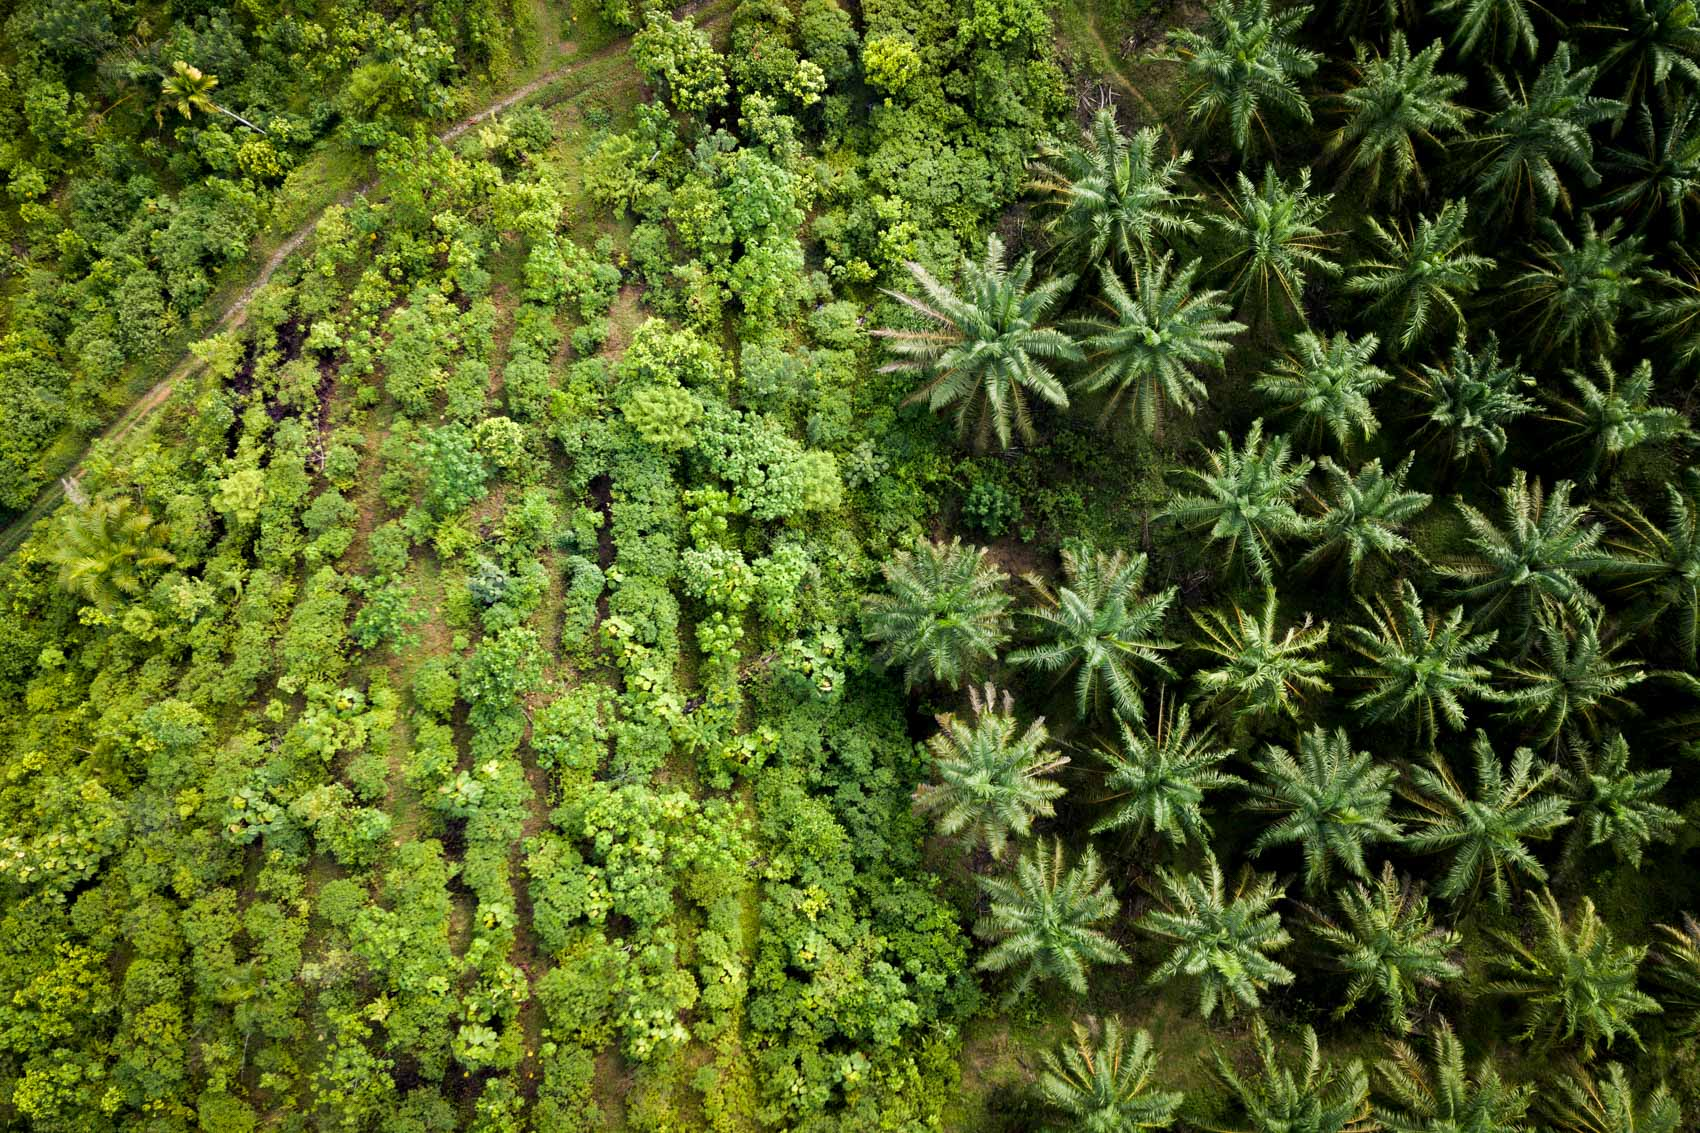 Aerial view of palm oil plantation next to a restoration site in Northern Sumatra, Indonesia